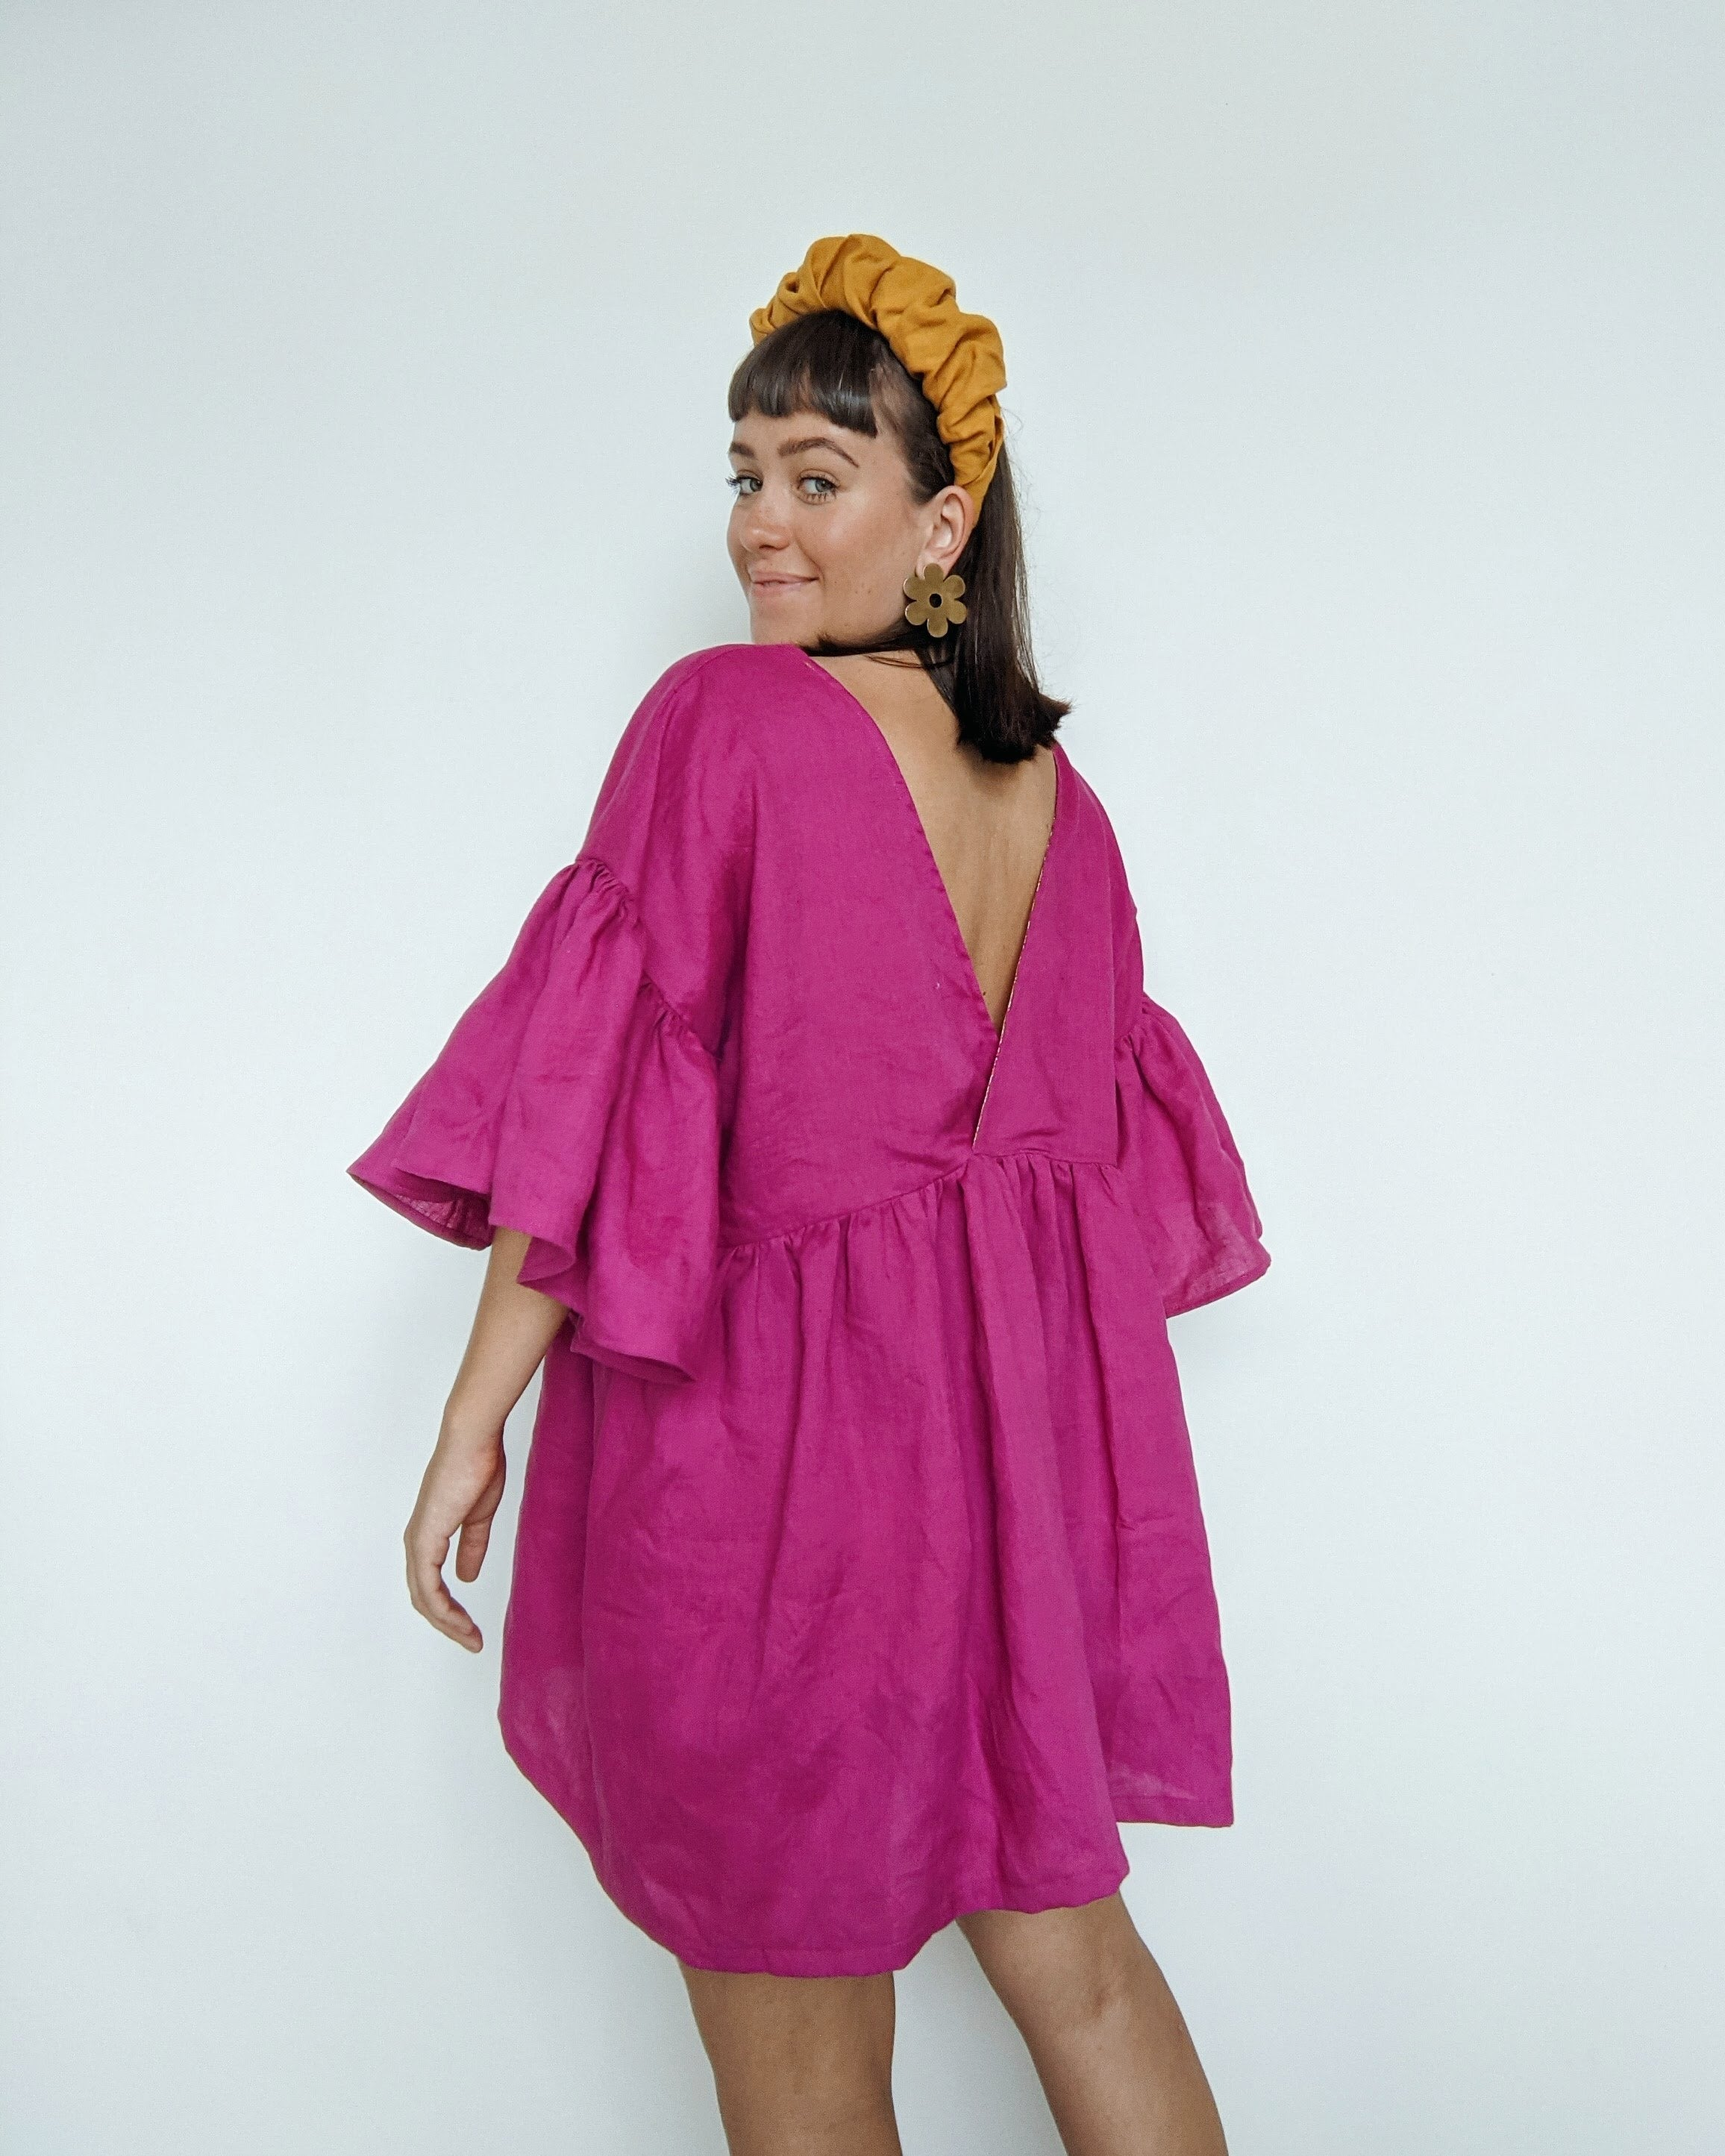 Daisy stands with her back facing to show the v back on her magenta linen Maya ruffle dress hack.